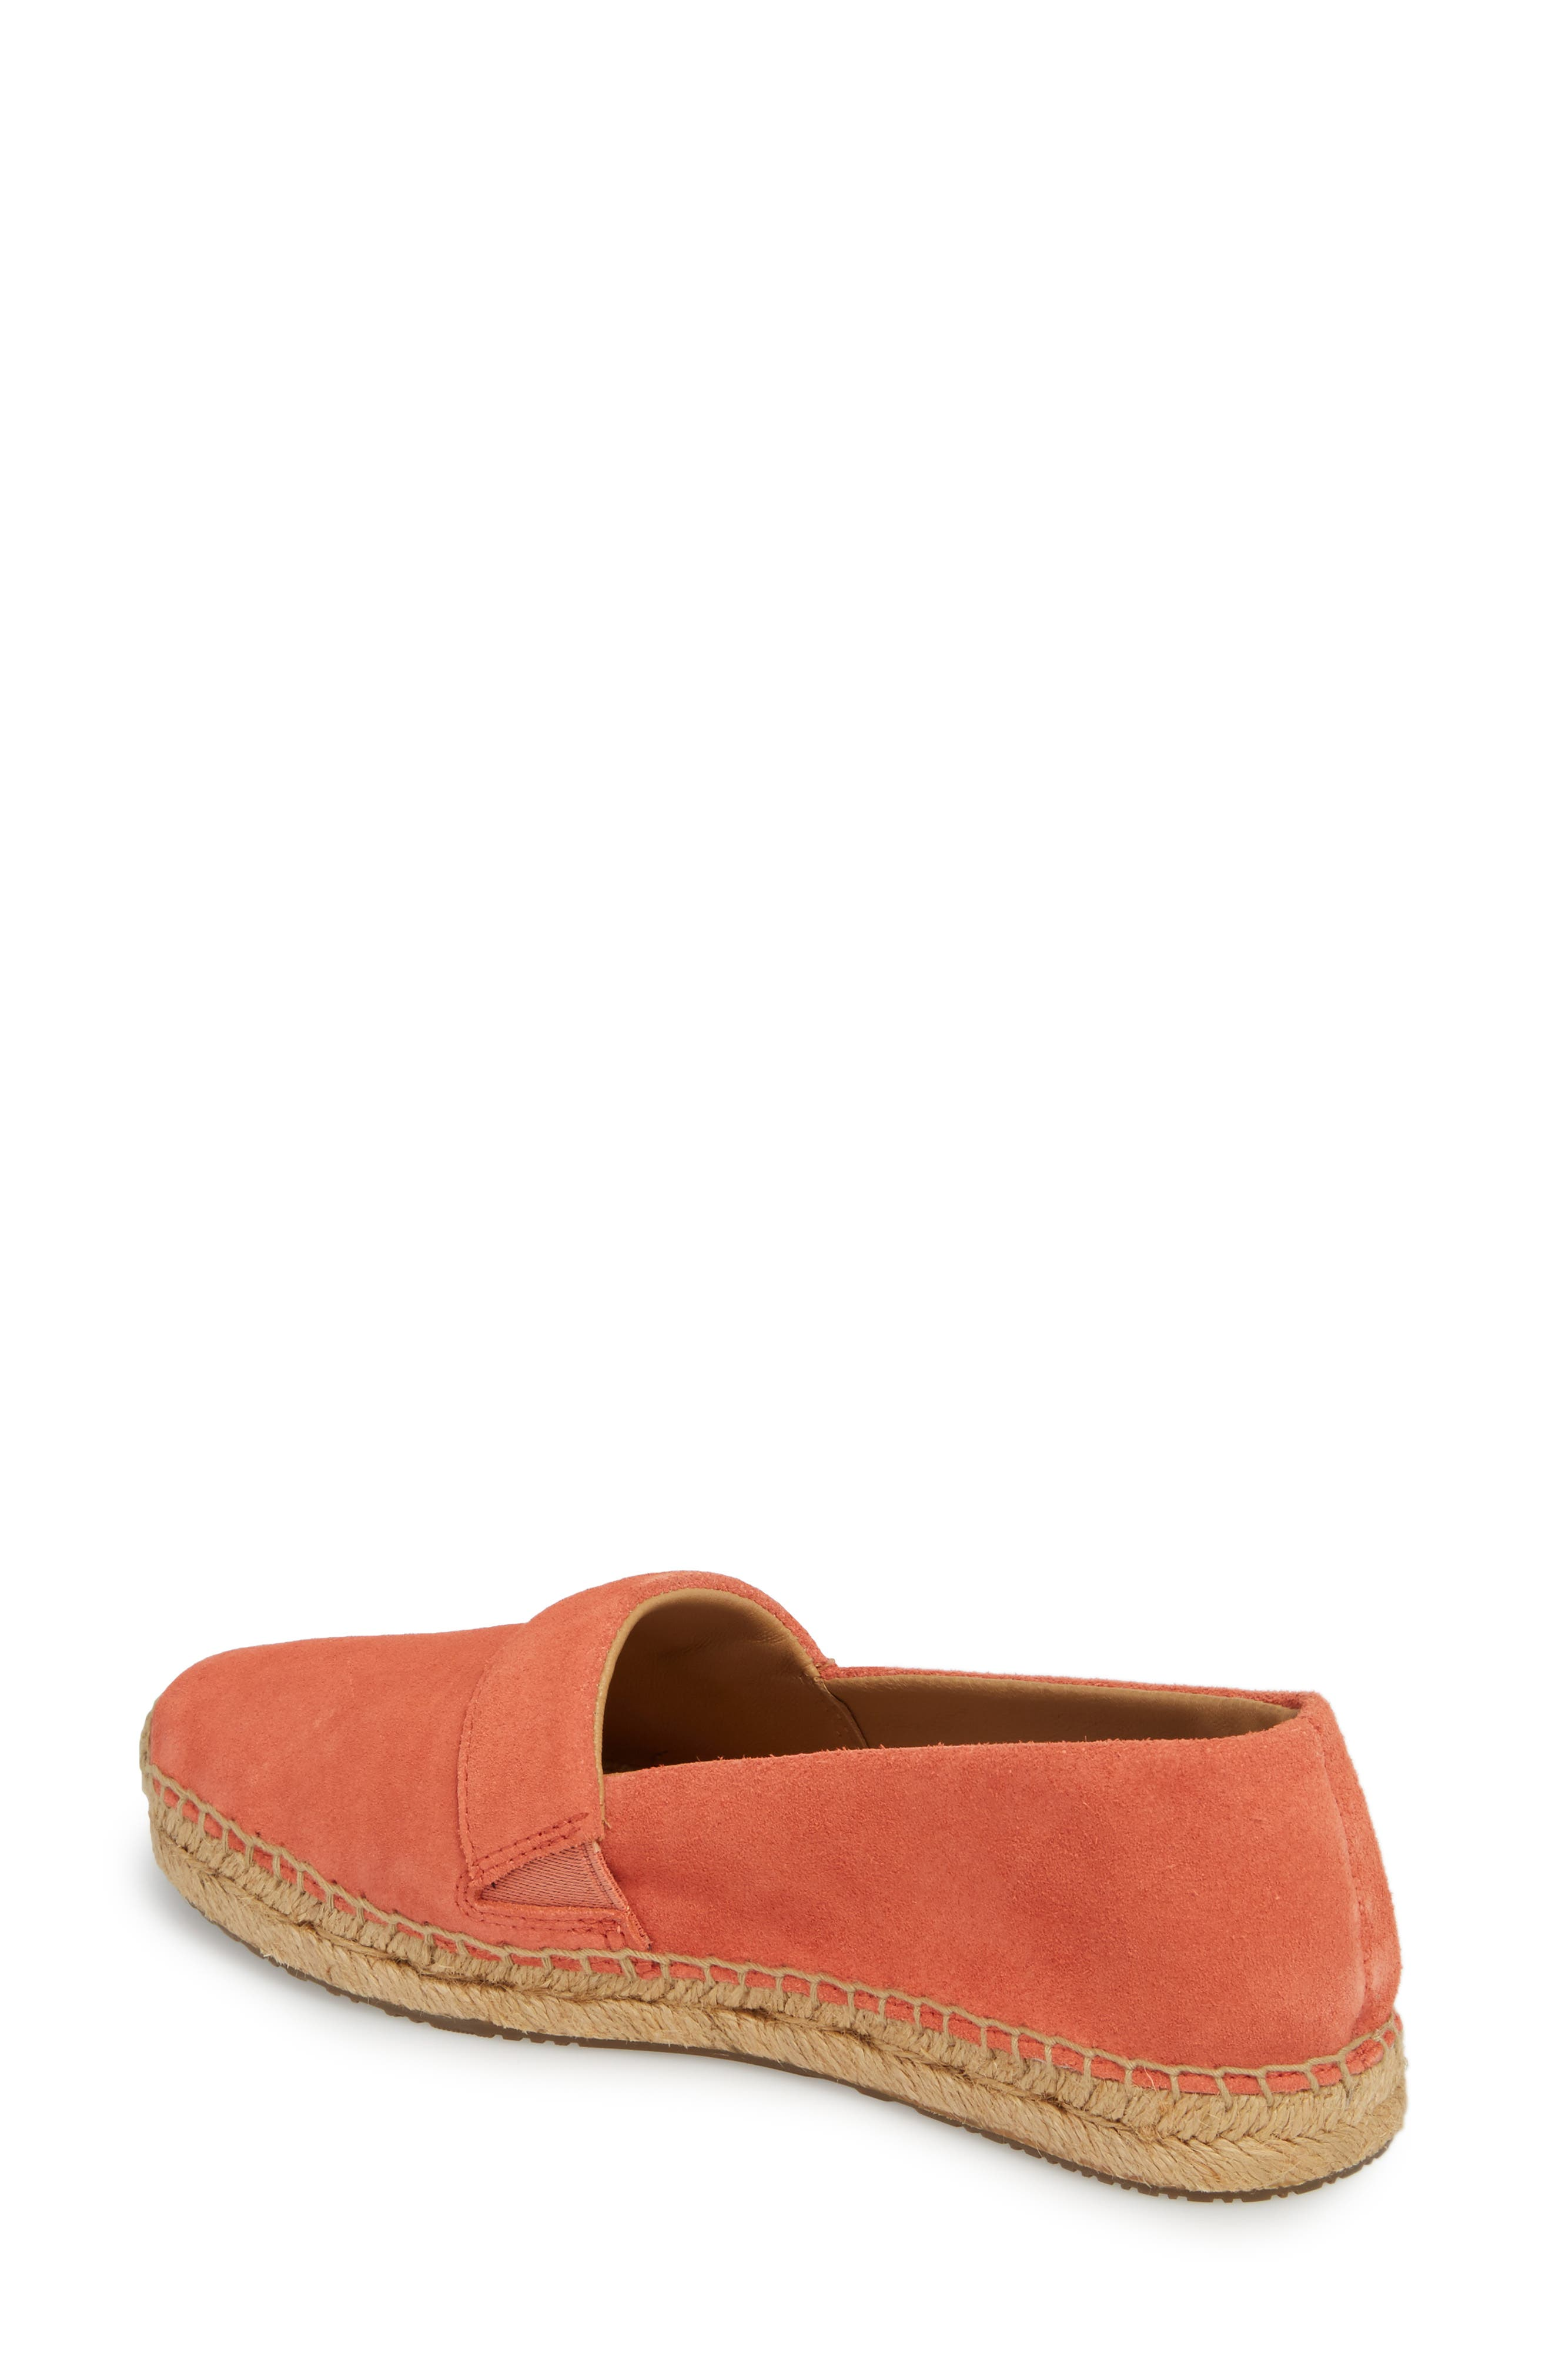 Reneda Espadrille Slip-On,                             Alternate thumbnail 2, color,                             Fusion Coral Suede